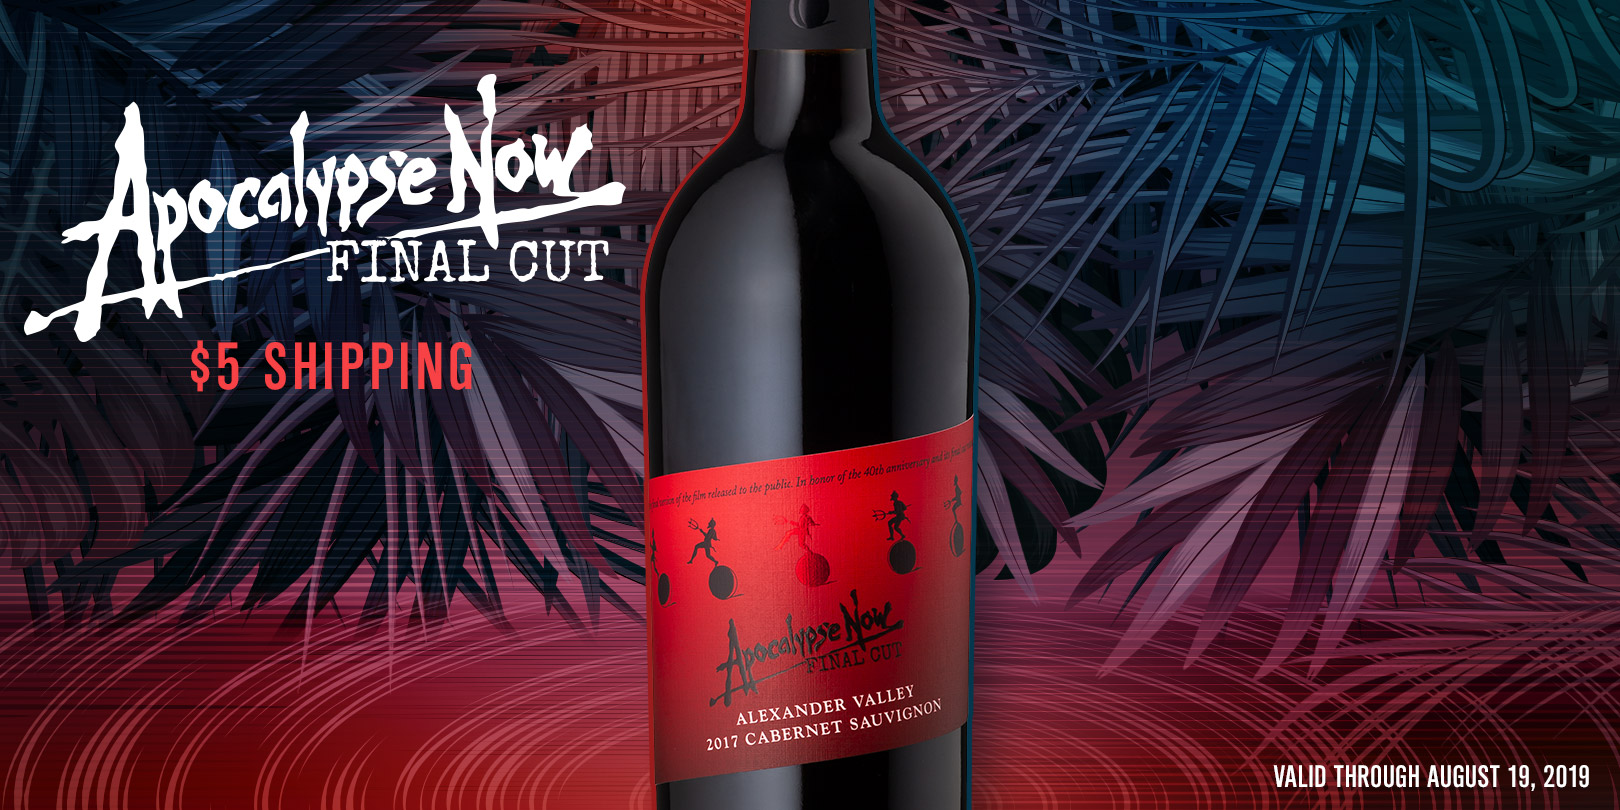 Apocalypse Now Final Cut wine bottle and $5 Shipping on a jungle background.. - Featured Item